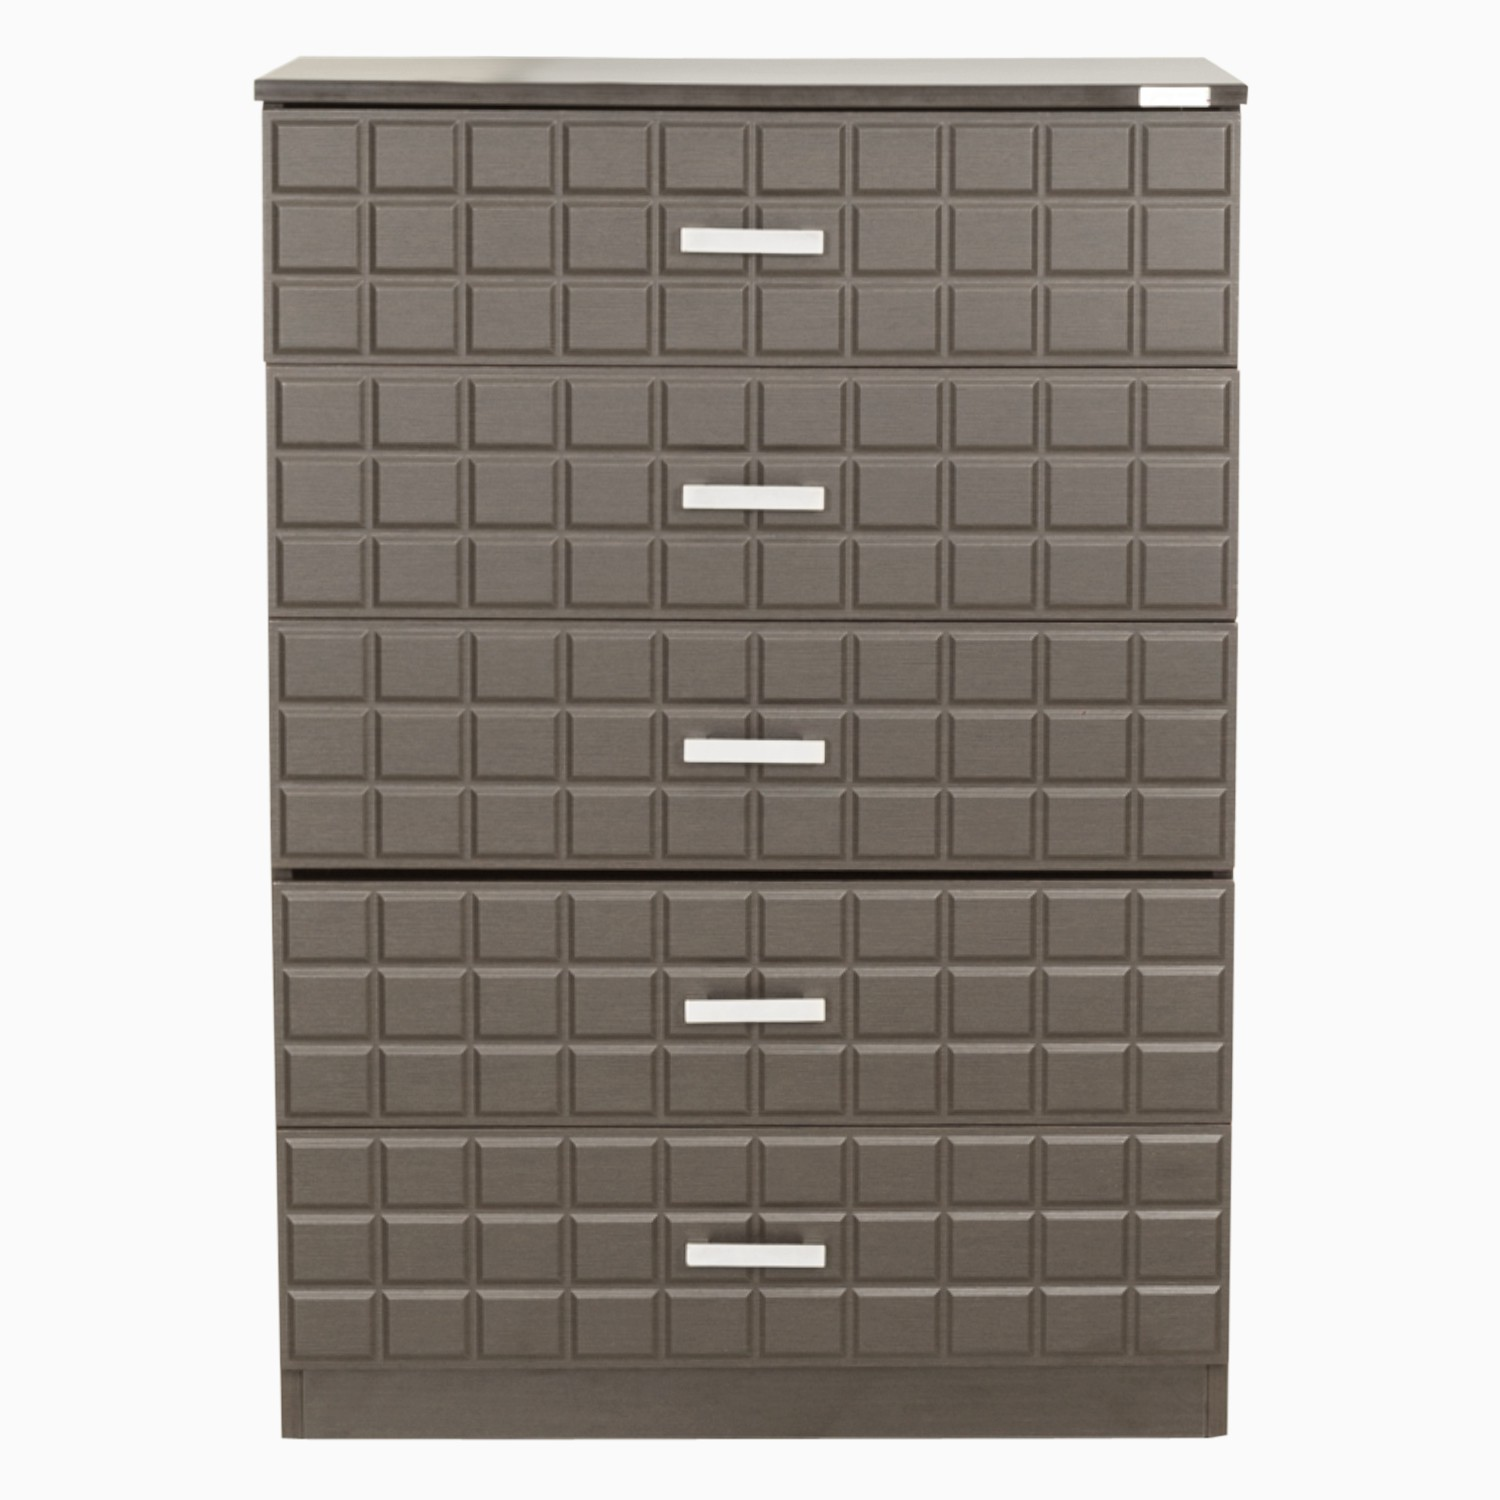 ddf2ba910cc Godrej Interio Chocolate Plus 800W Engineered Wood Free Standing Chest of  Drawers(Finish Color - Colarain)